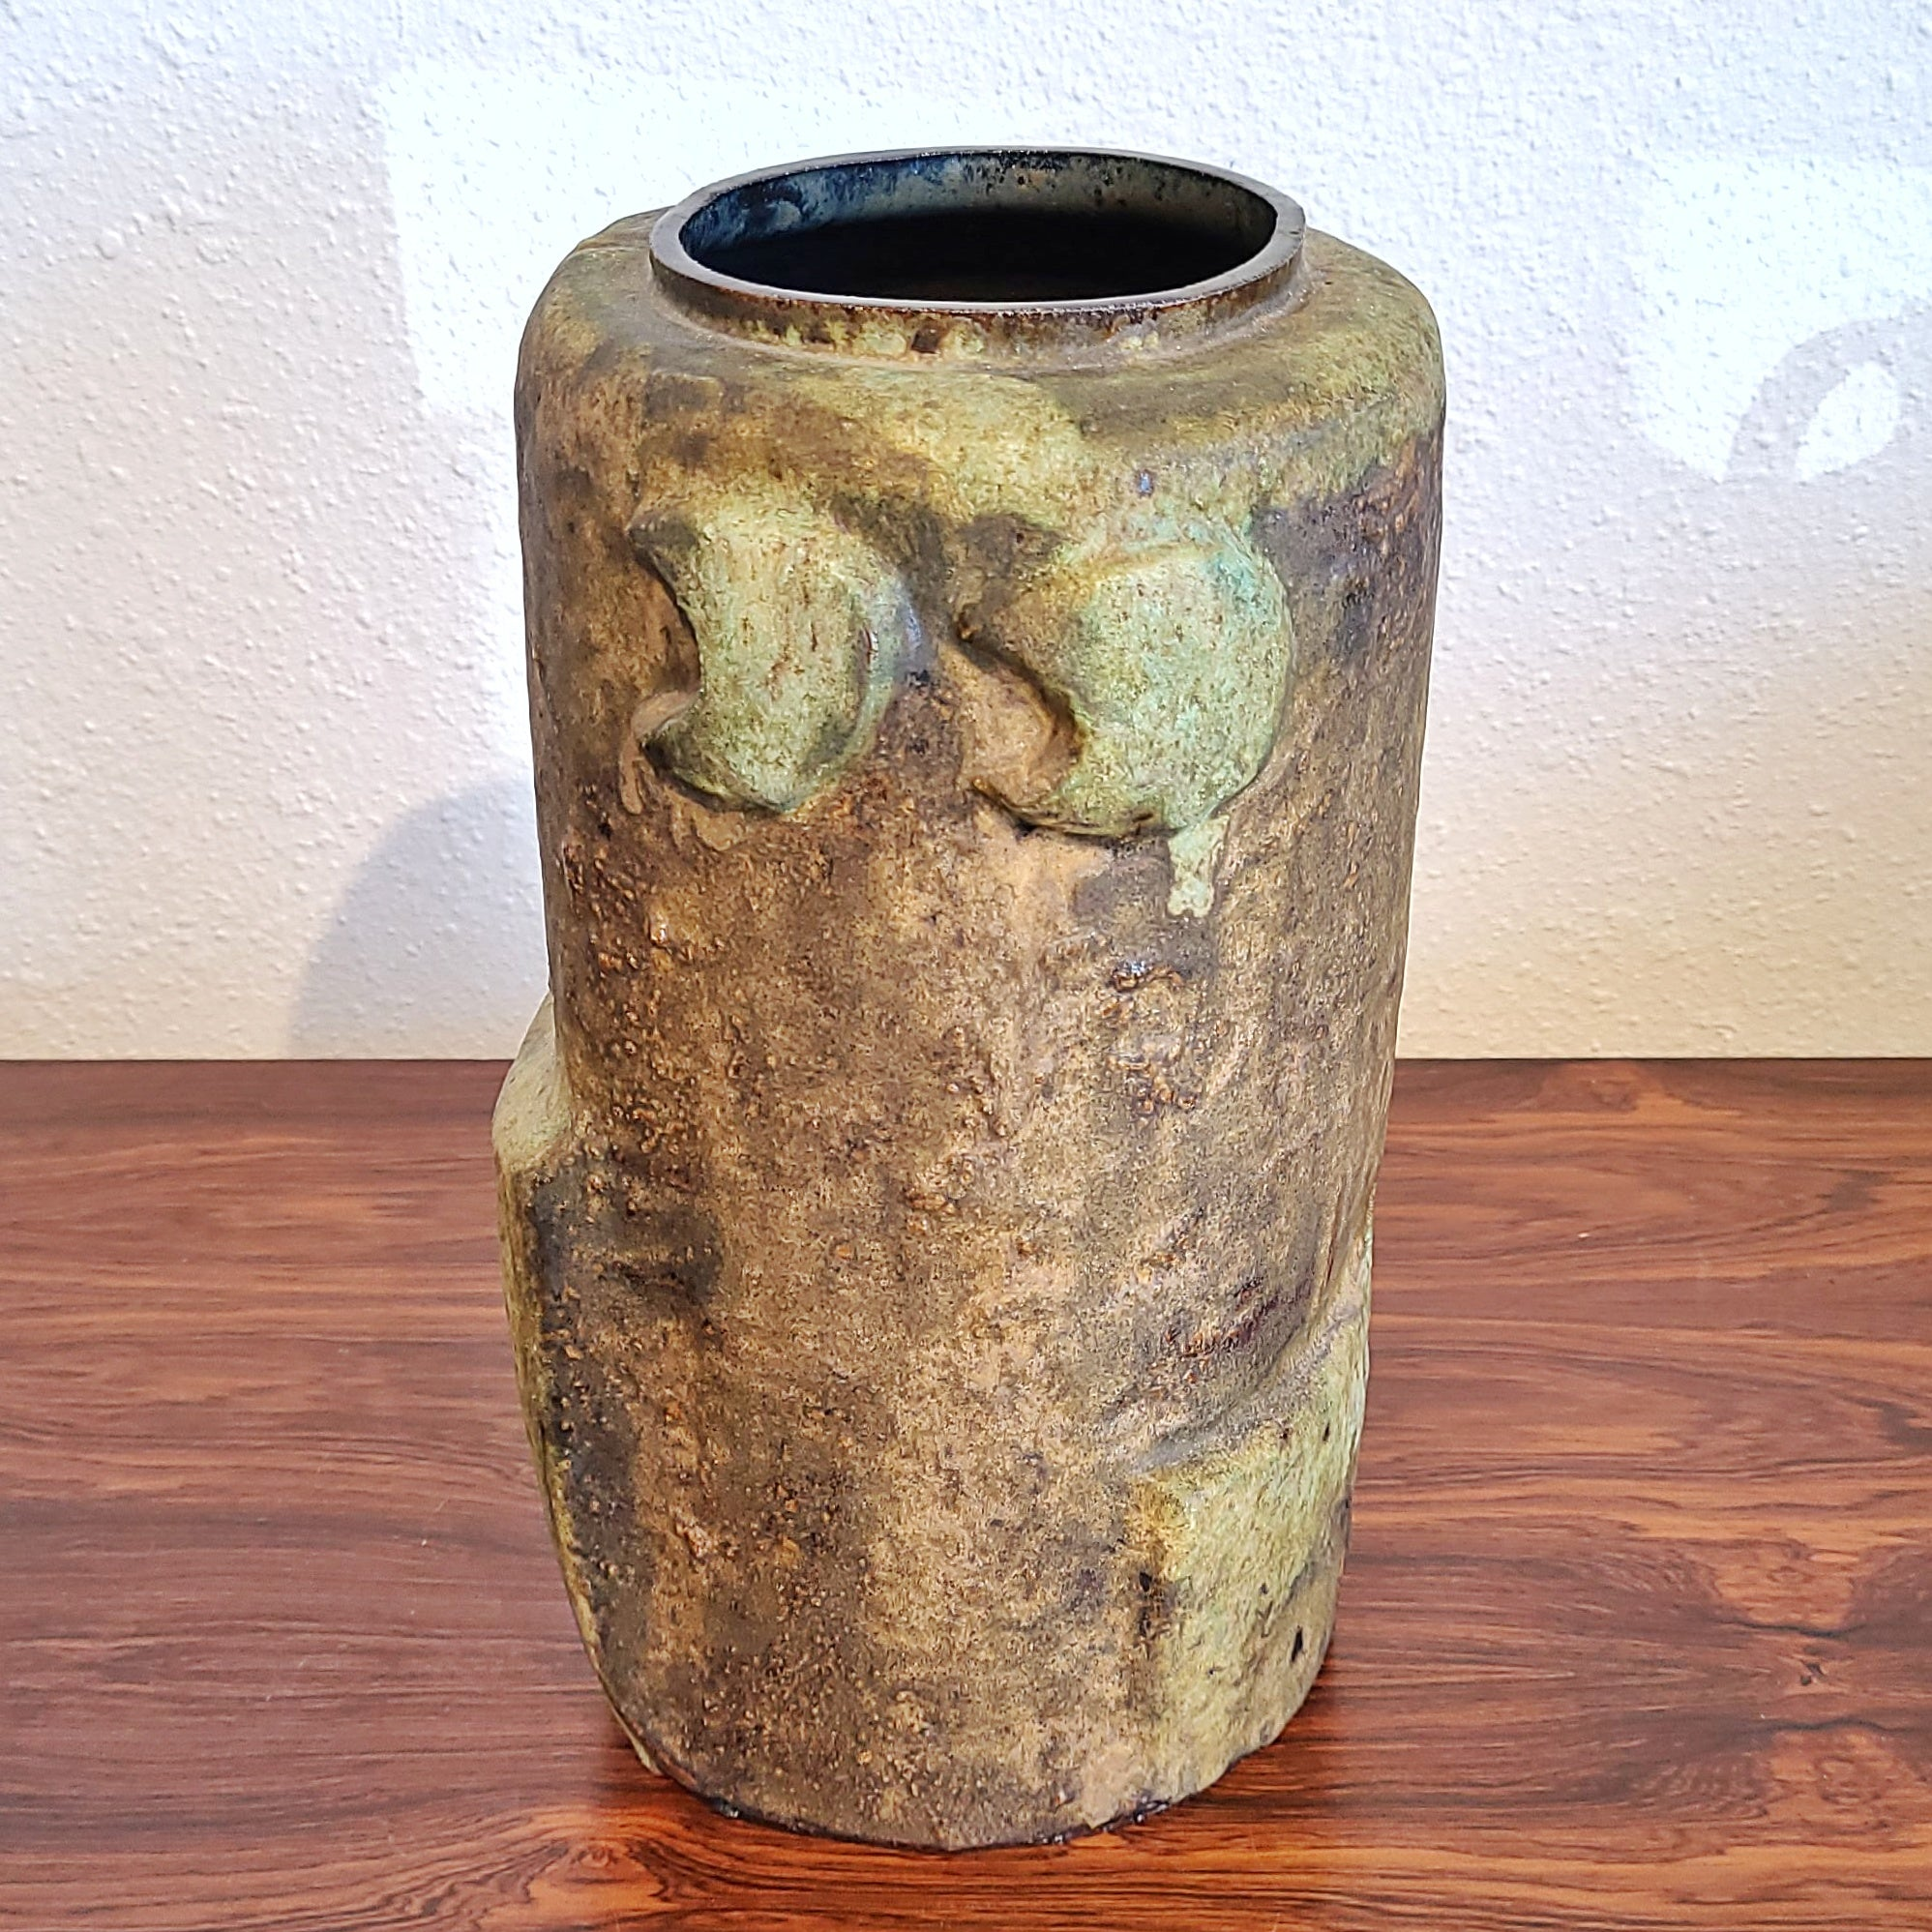 SCULPTURAL ABSTRACT VASE Nr. V38 BY H.F.SCHÄFFENACKER